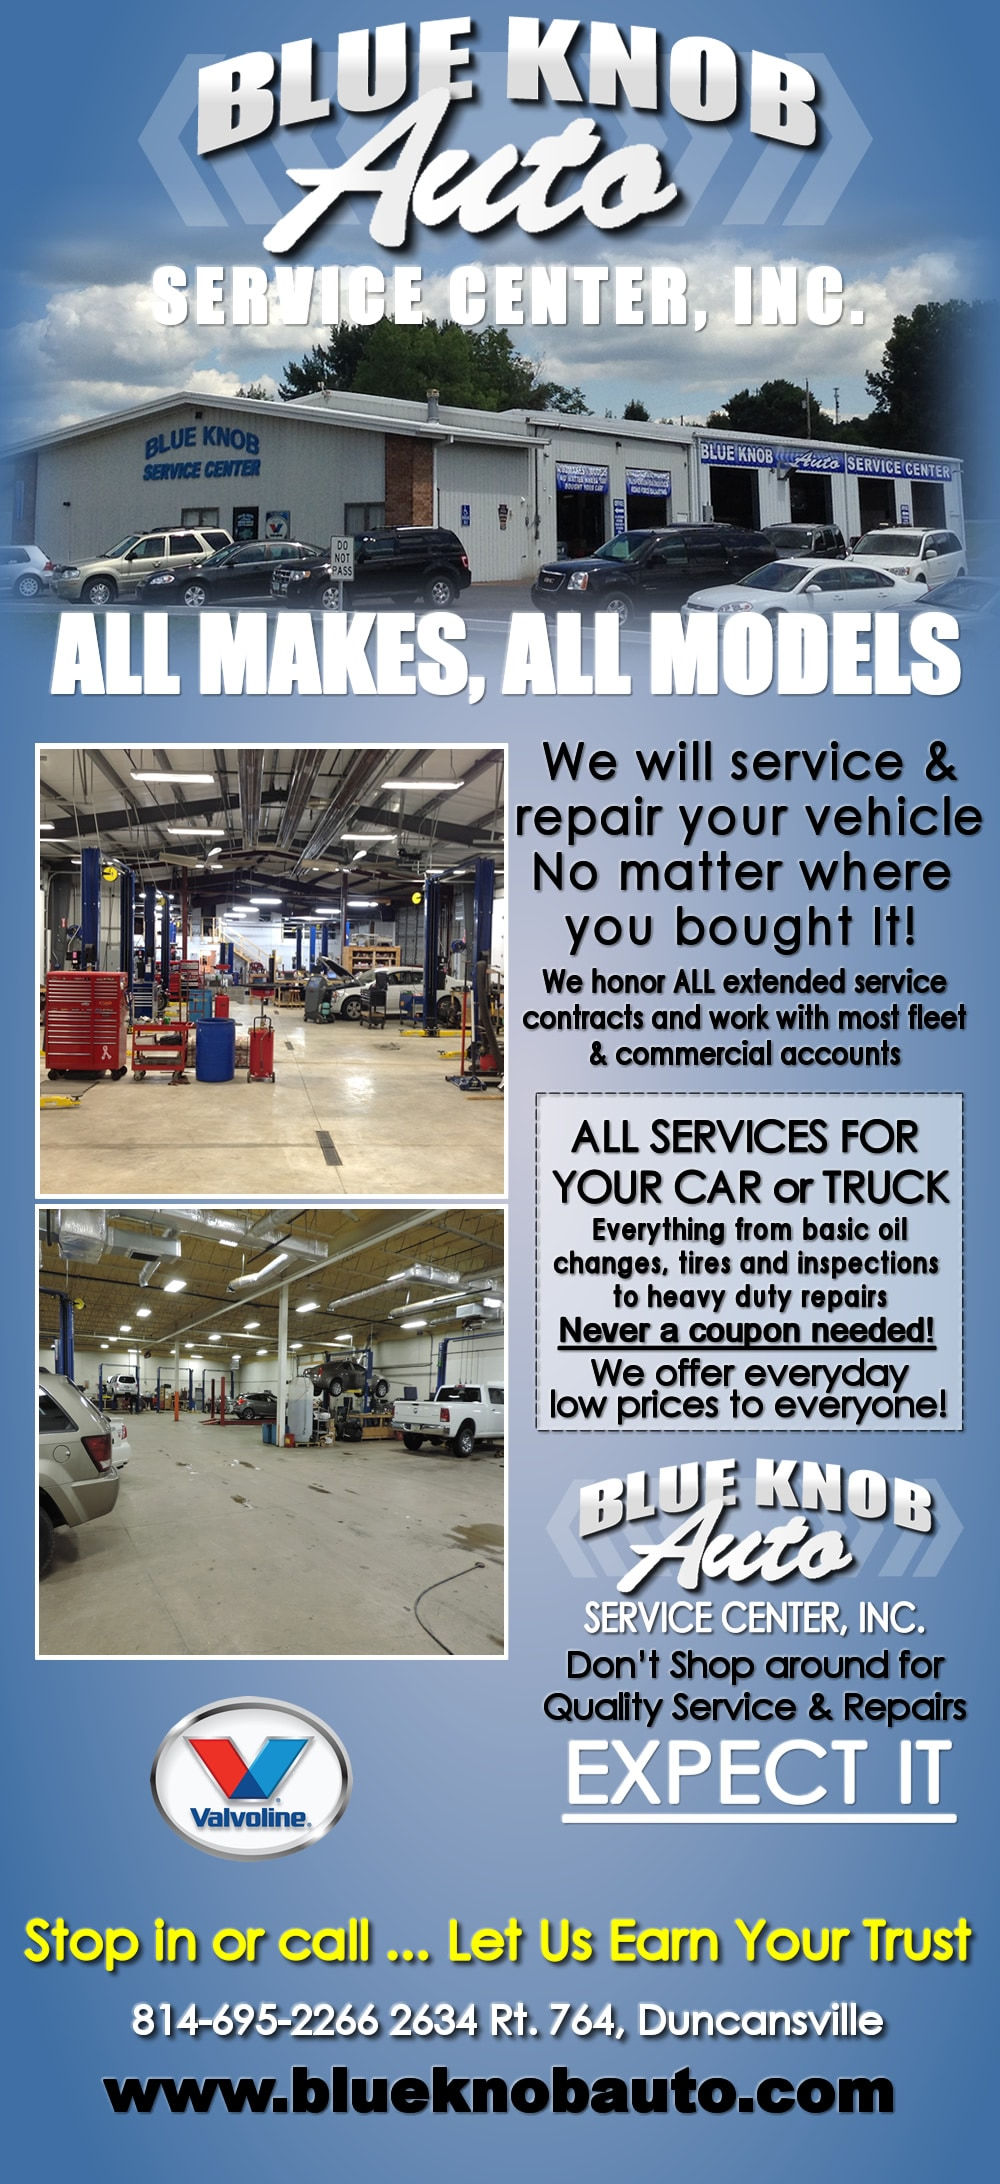 blue knob auto altoona pa service center auto repair. Black Bedroom Furniture Sets. Home Design Ideas